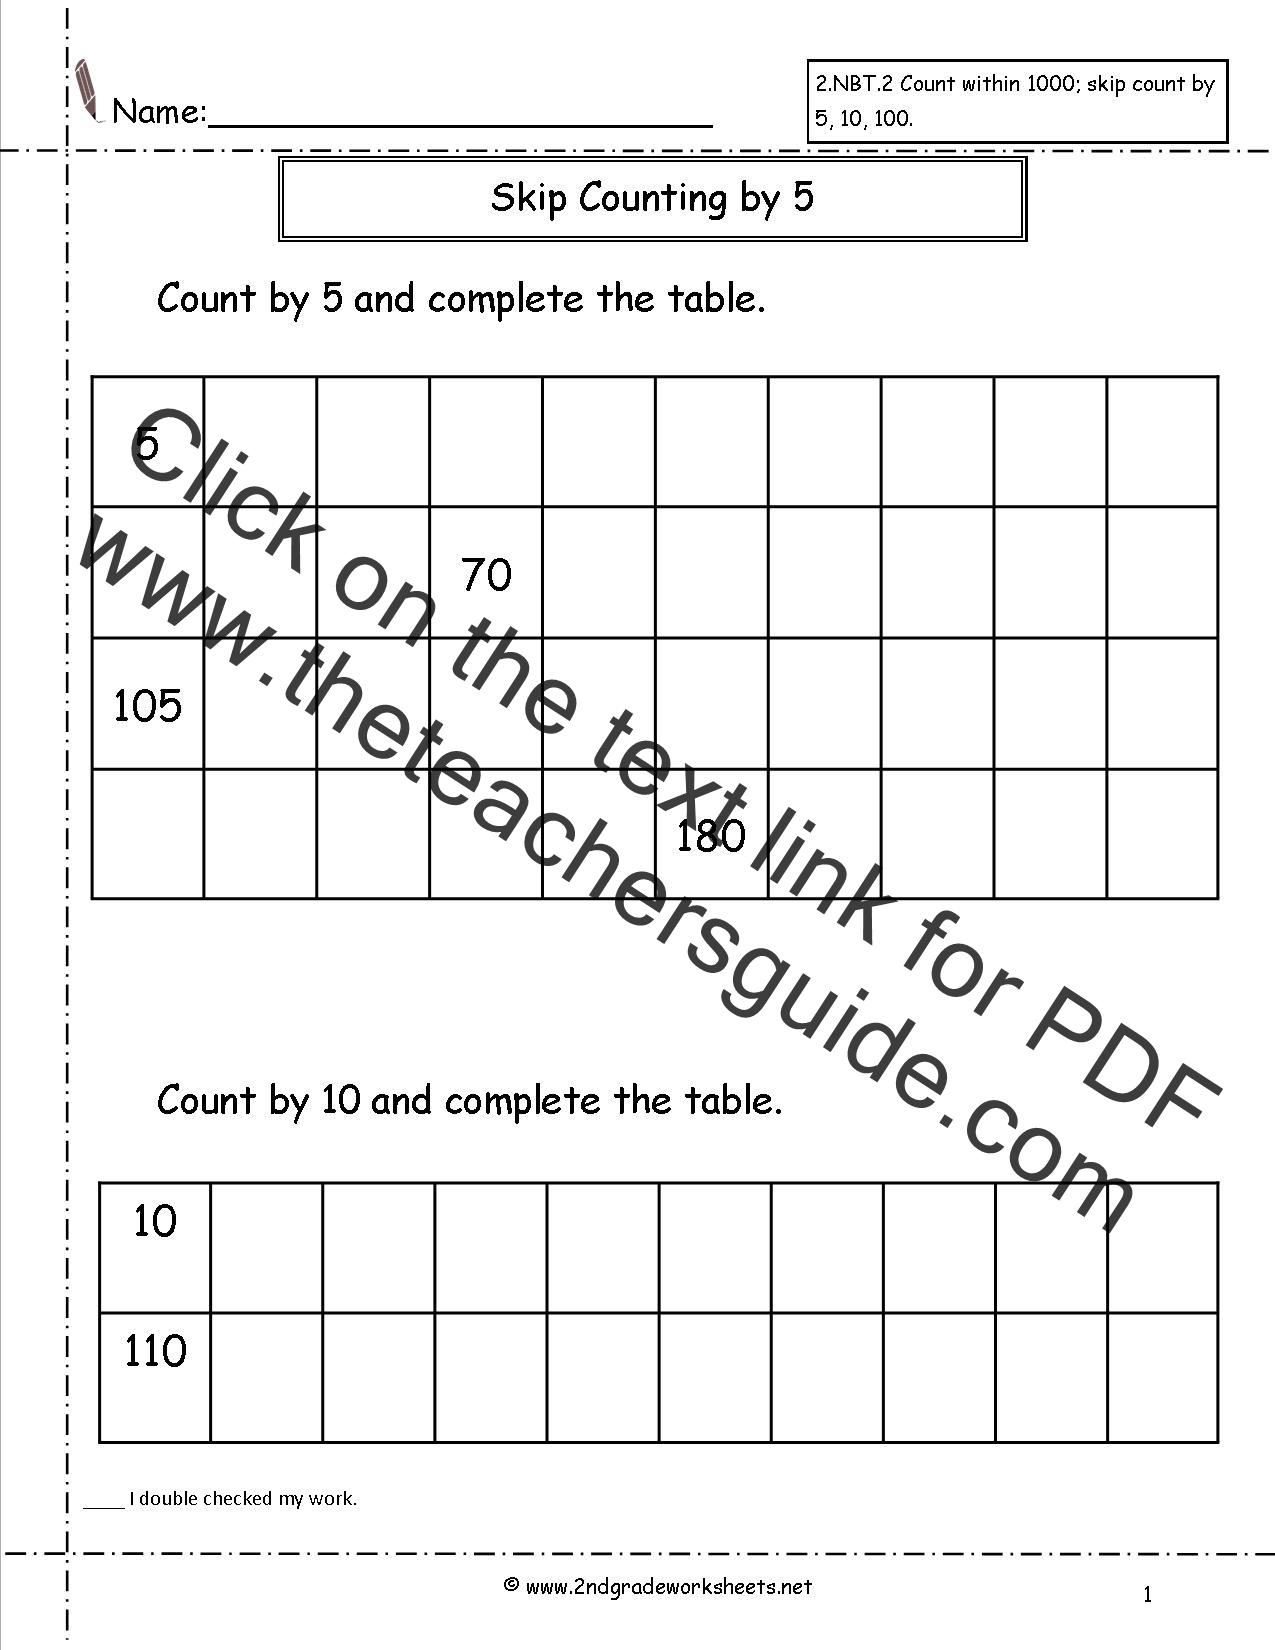 Worksheets Free Skip Counting Worksheets free skip counting worksheets count by 5 and 10